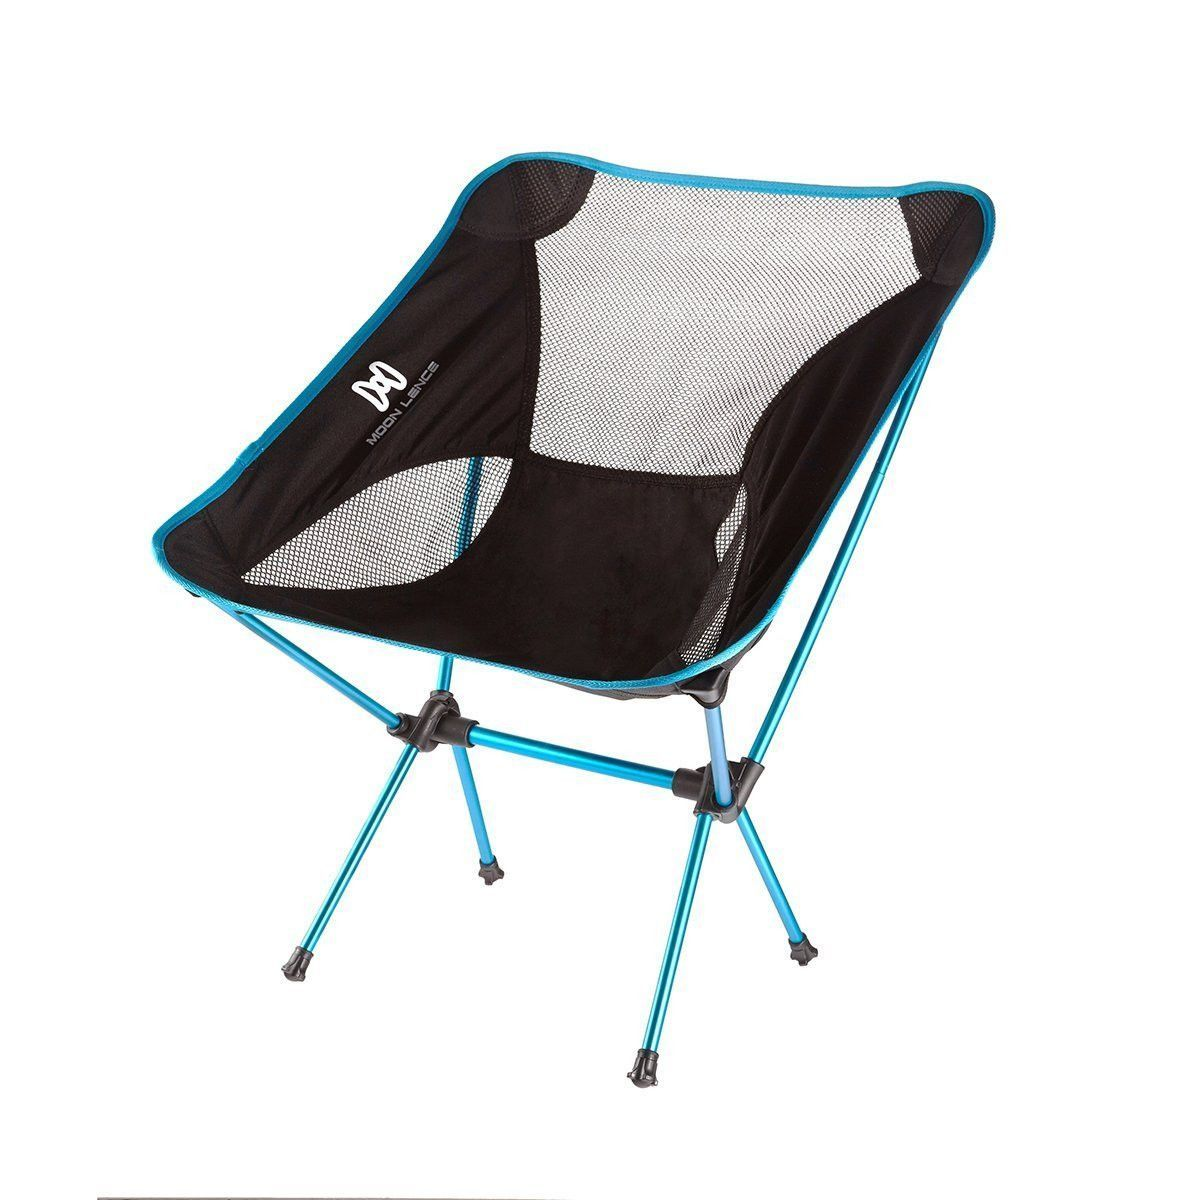 Moon Lence Ultralight Folding Camping Chairs Beach With